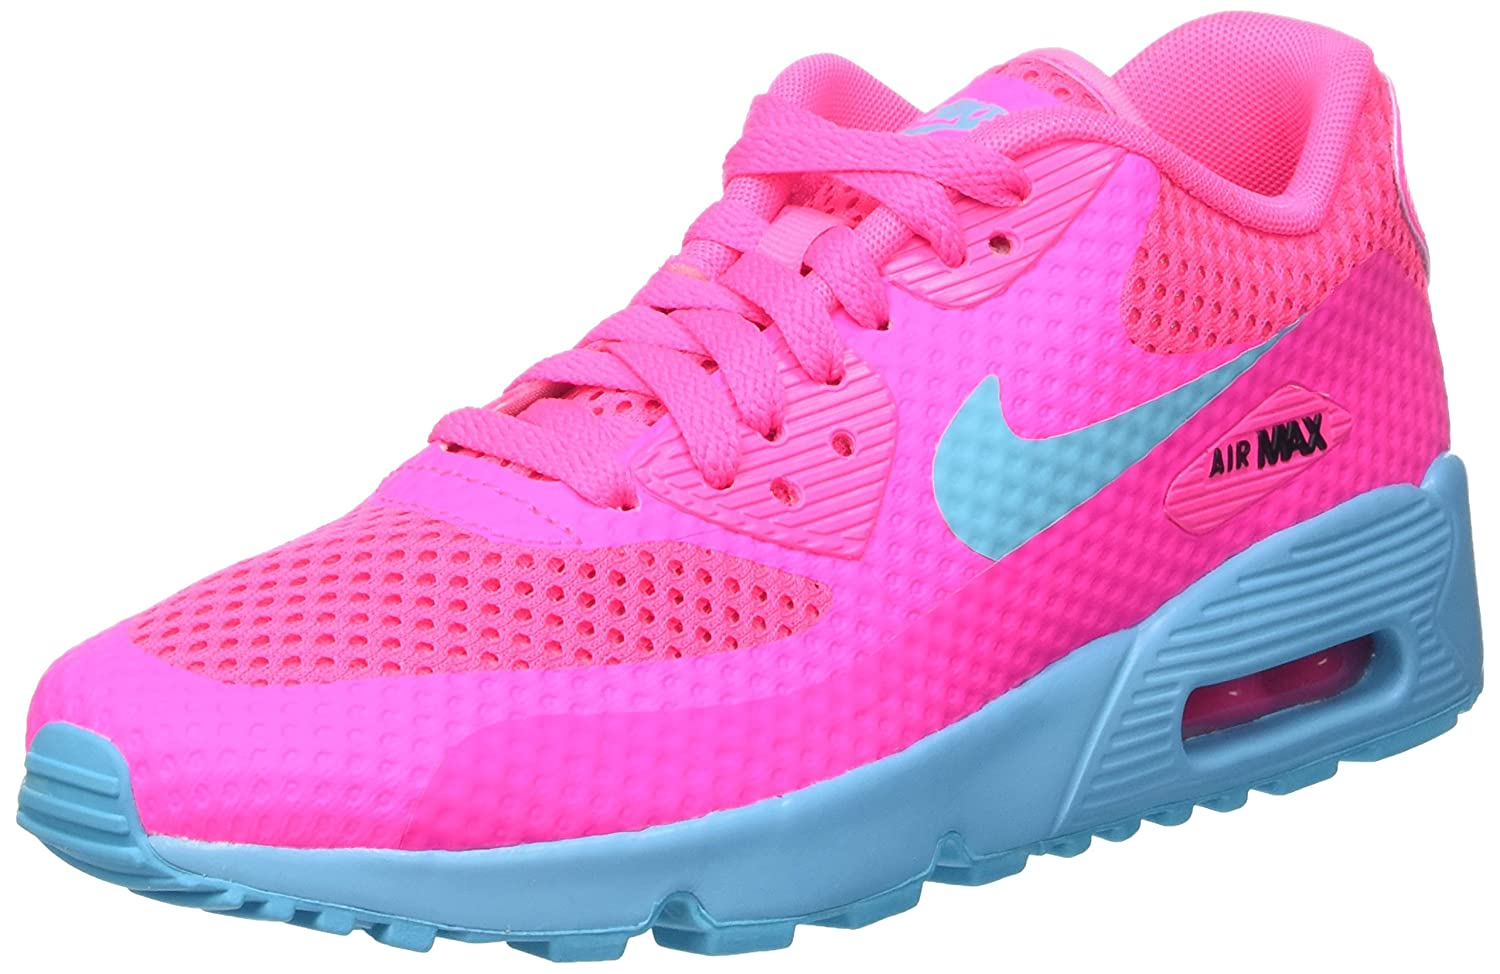 best service 8c4e3 b3293 Amazon.com   Nike Kids Air Max 90 BR GS, PINK BLAST GAMMA BLUE-BLACK, Youth  Size 5   Sneakers